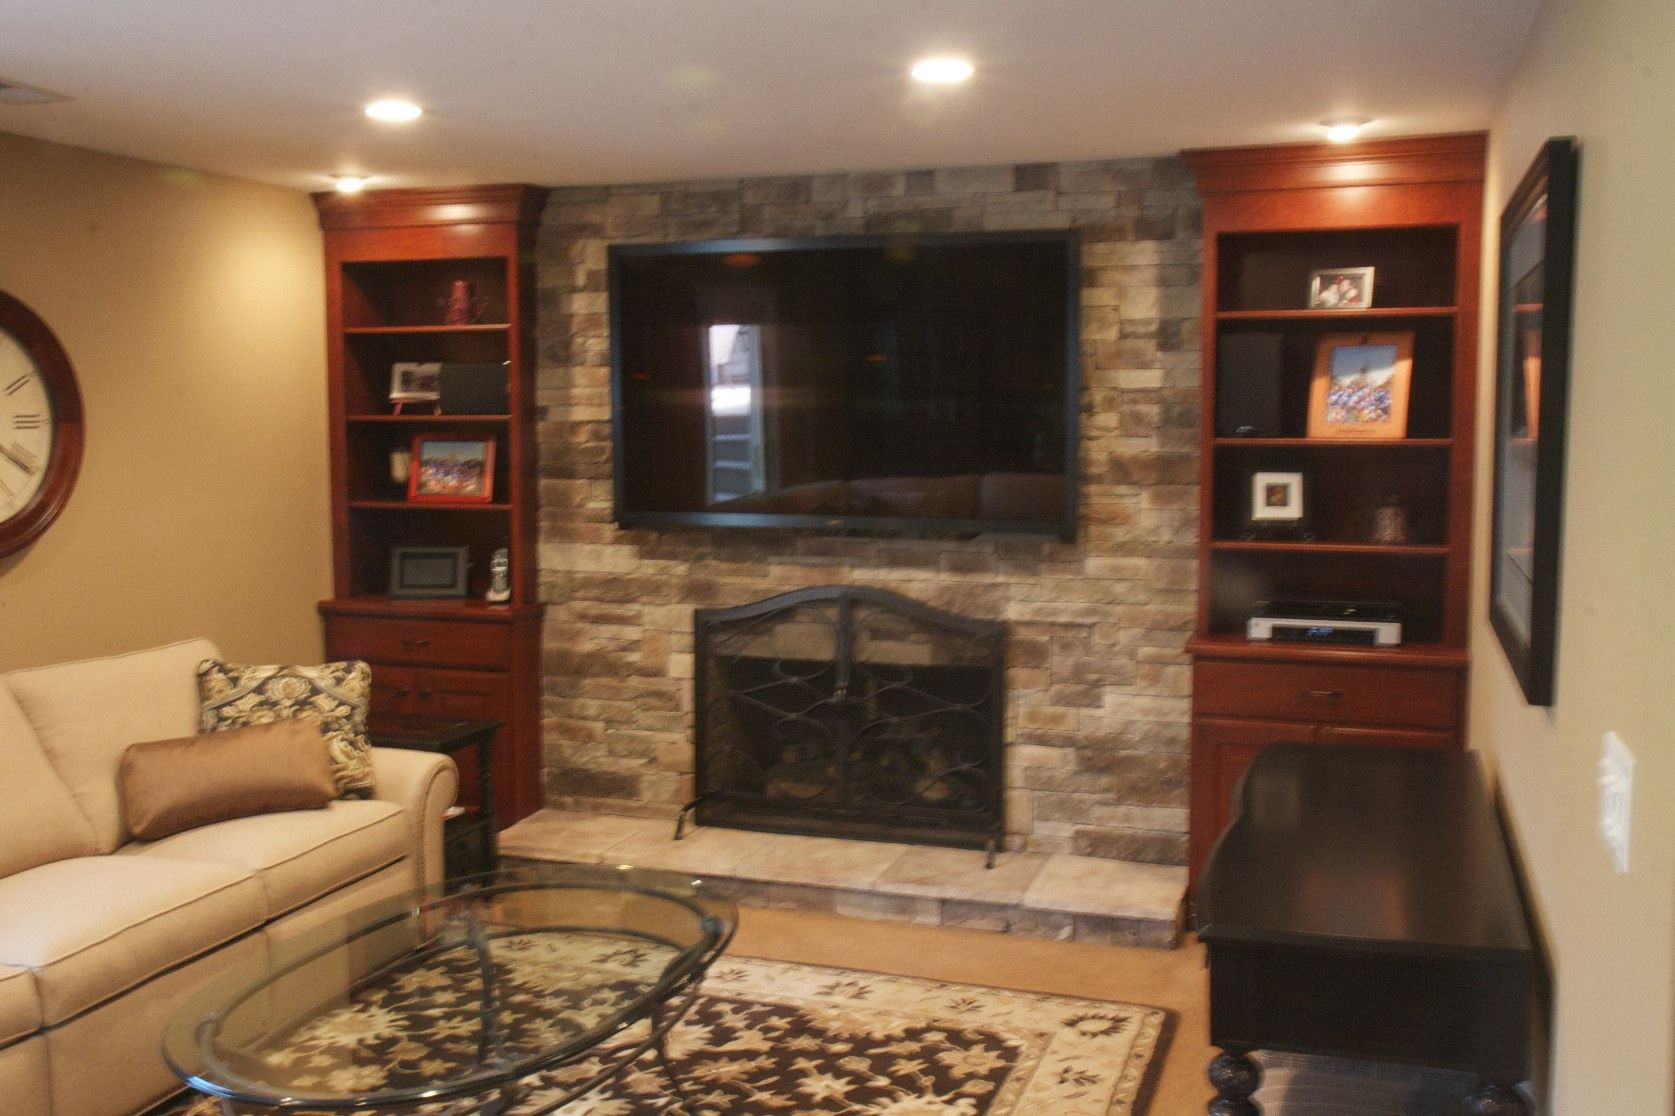 Ledge Stone Fireplace U0026 TV Installed Over Existing Brick Fireplace. Custom  Bookcases Were Added To